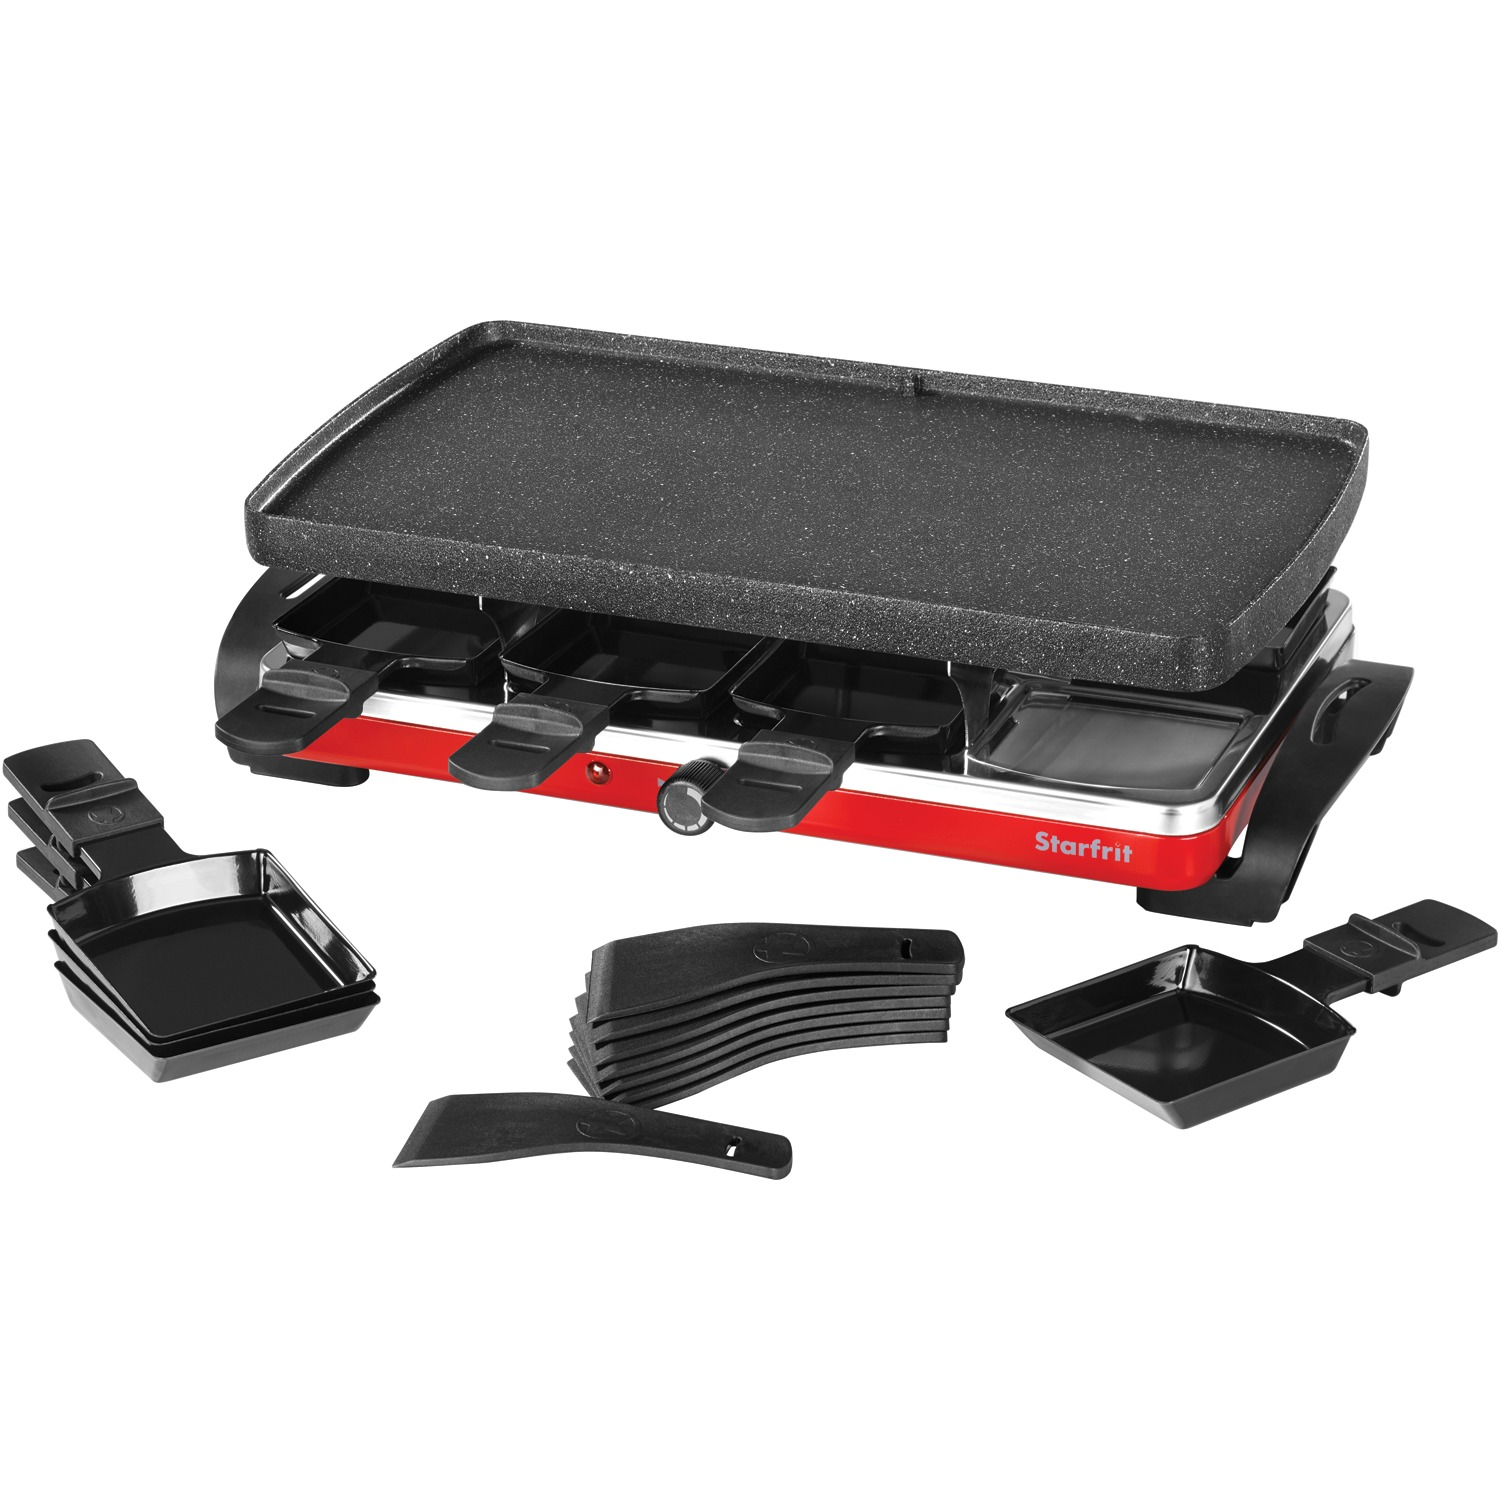 The Rock By Starfrit 024403-002-0000 The Rock Raclette/Party Grill Set